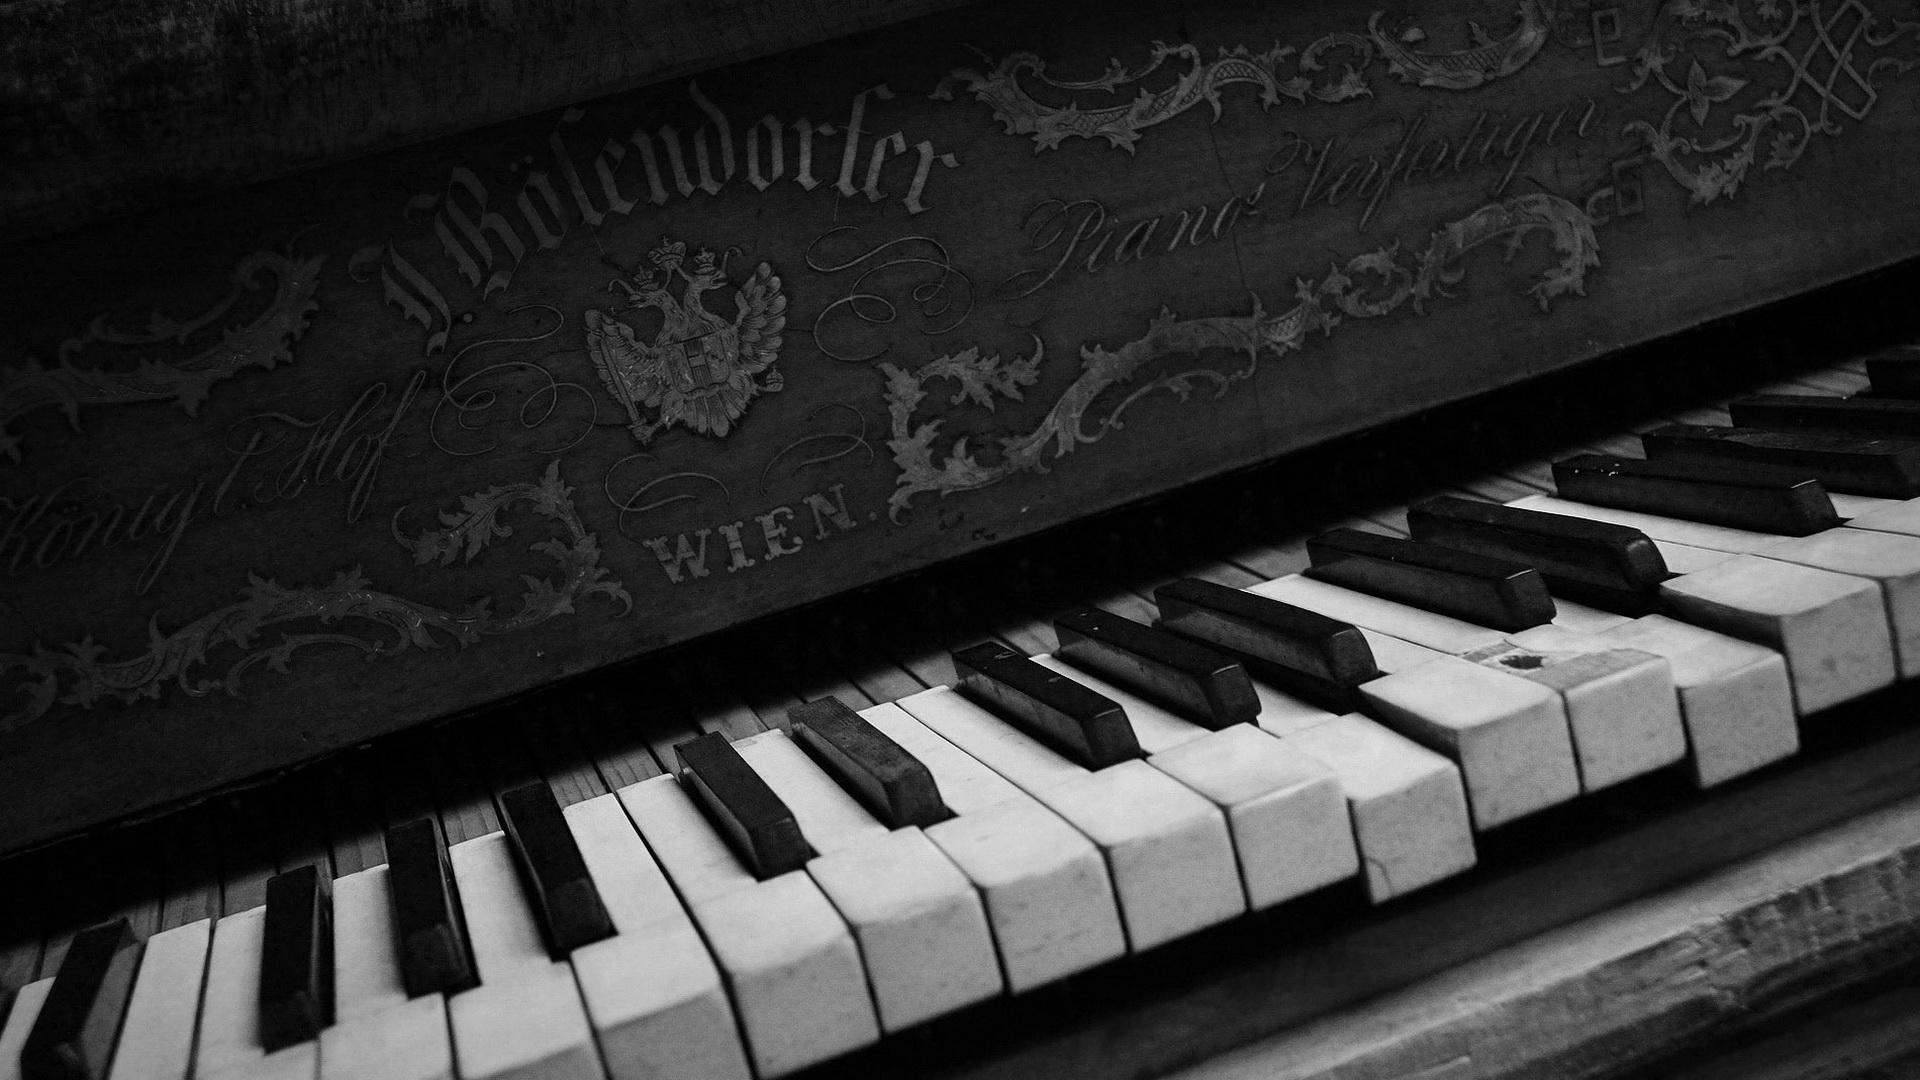 Piano hd wallpaper background image 1920x1080 id - Cool piano backgrounds ...